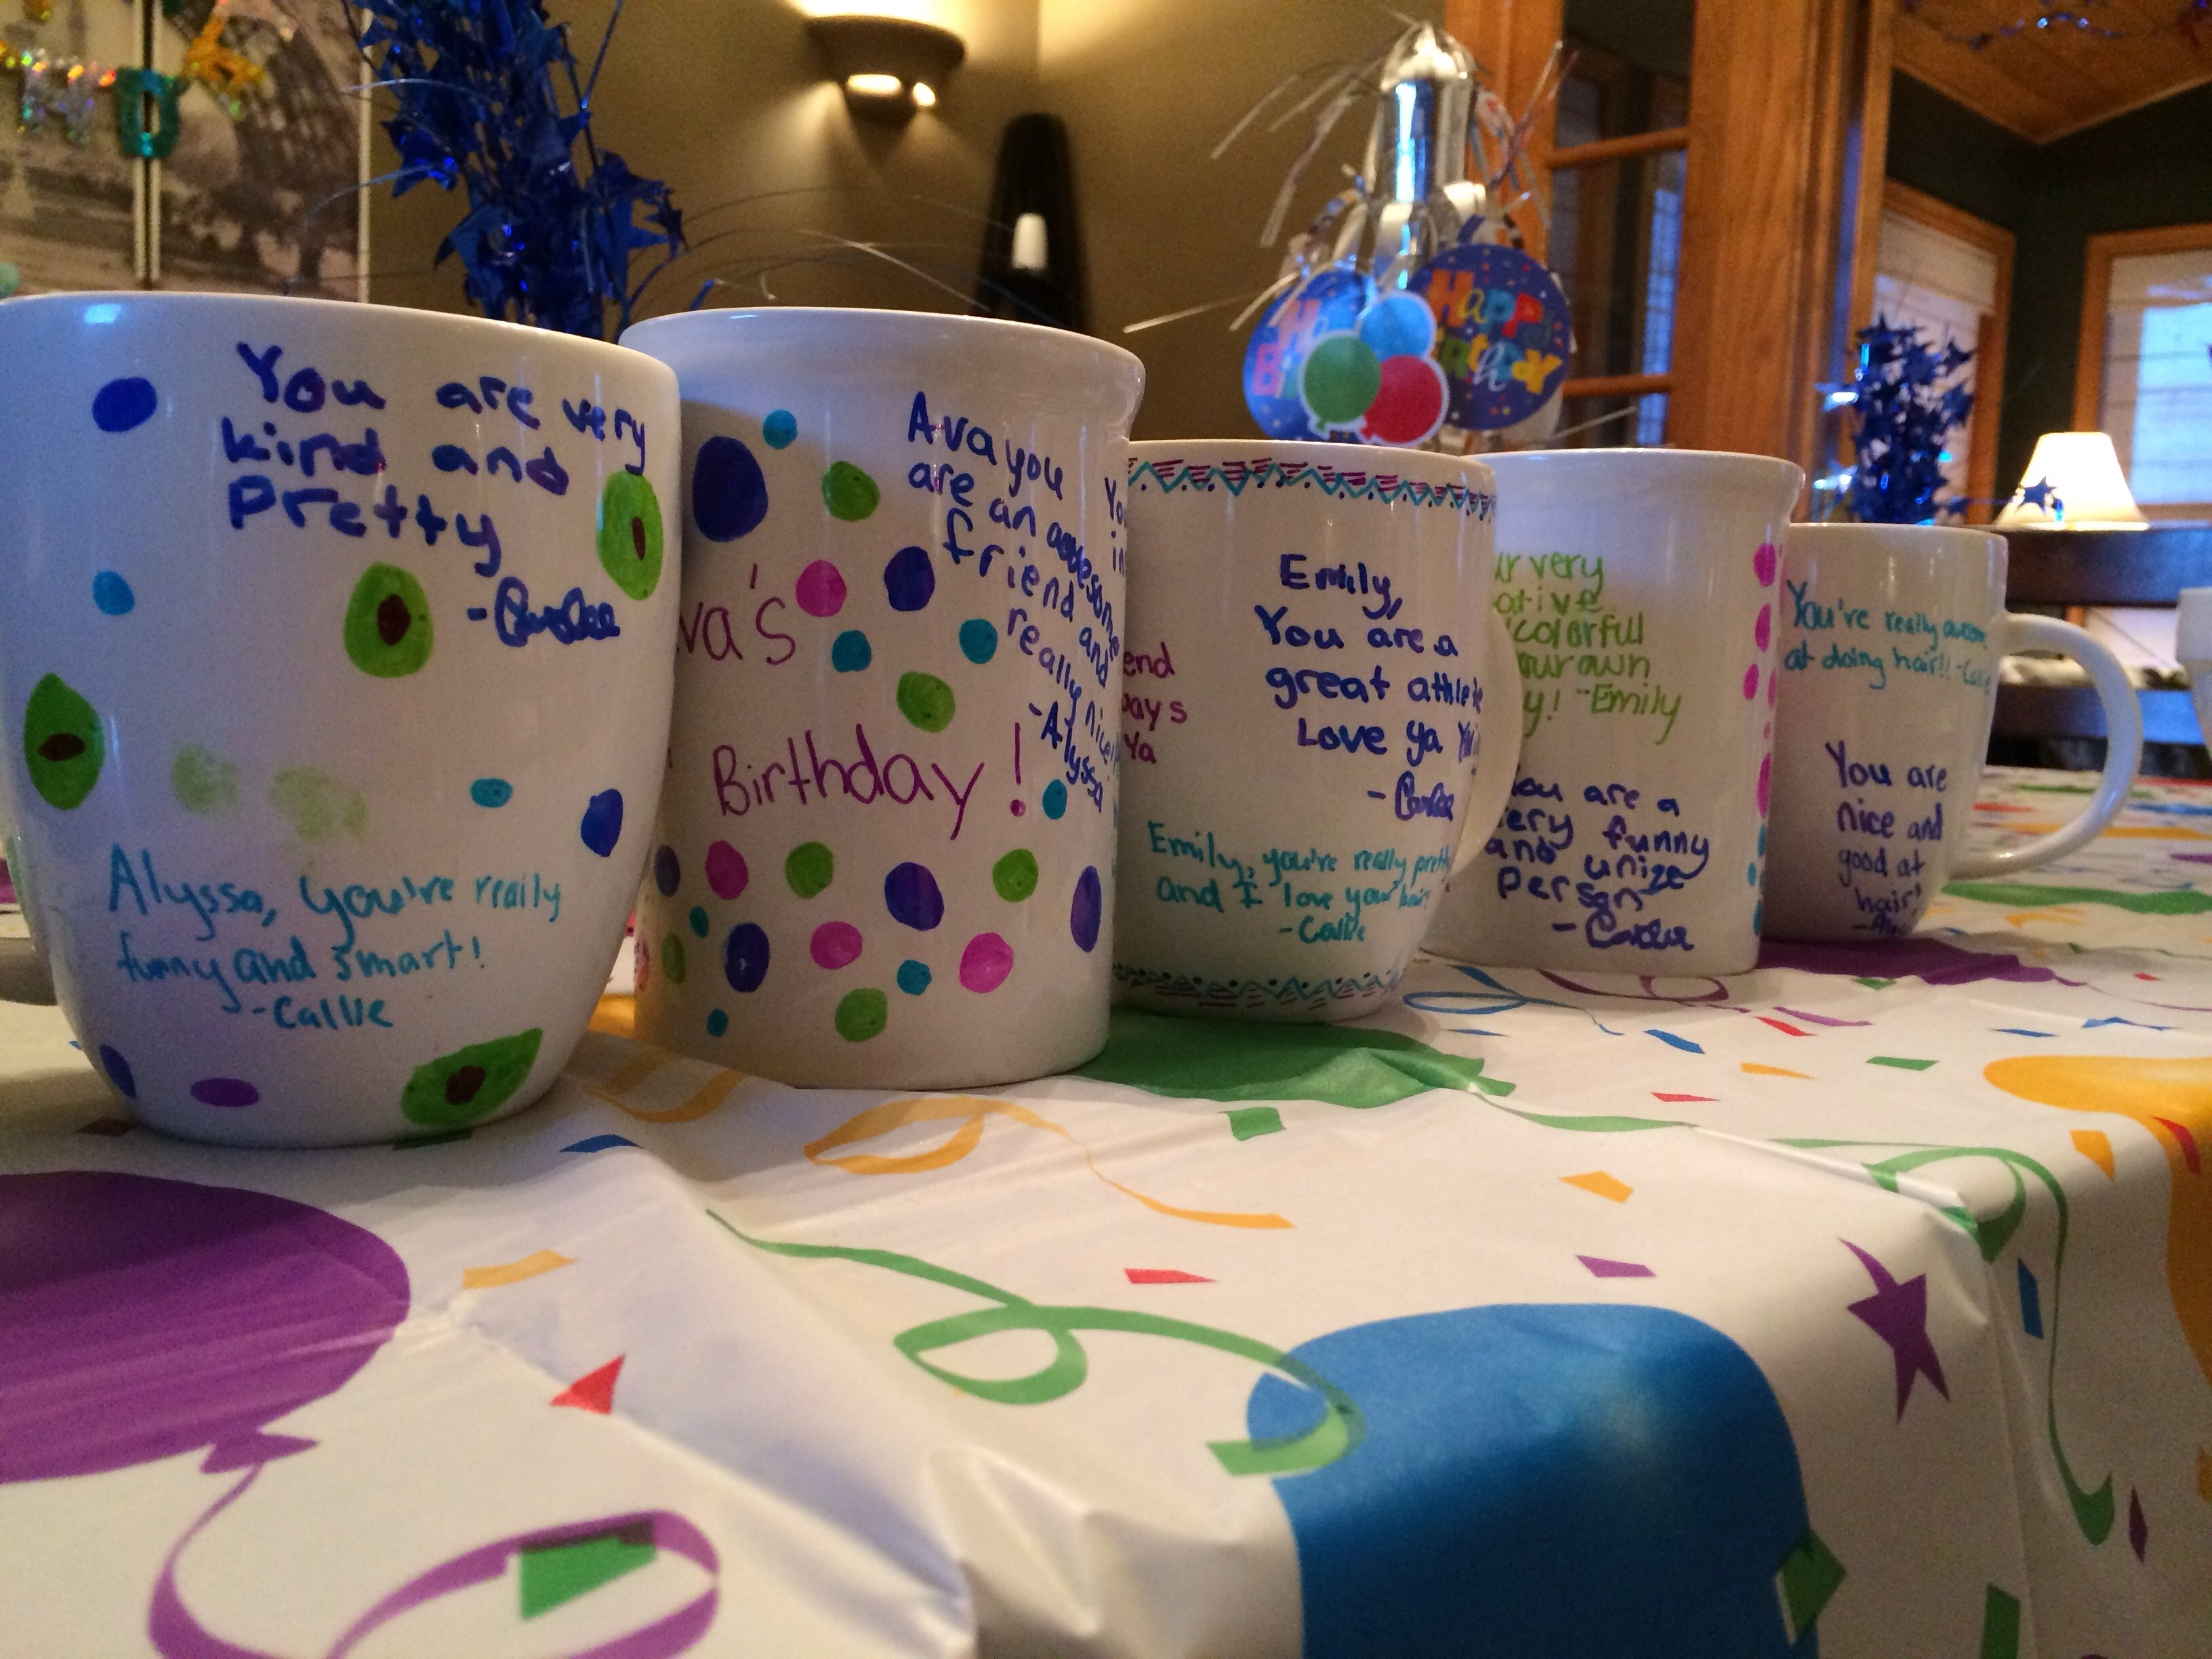 10 Famous Fun Birthday Party Ideas For 12 Year Olds slumber party invitation ideas homemade sharpie mugs birthday fun 13 2020